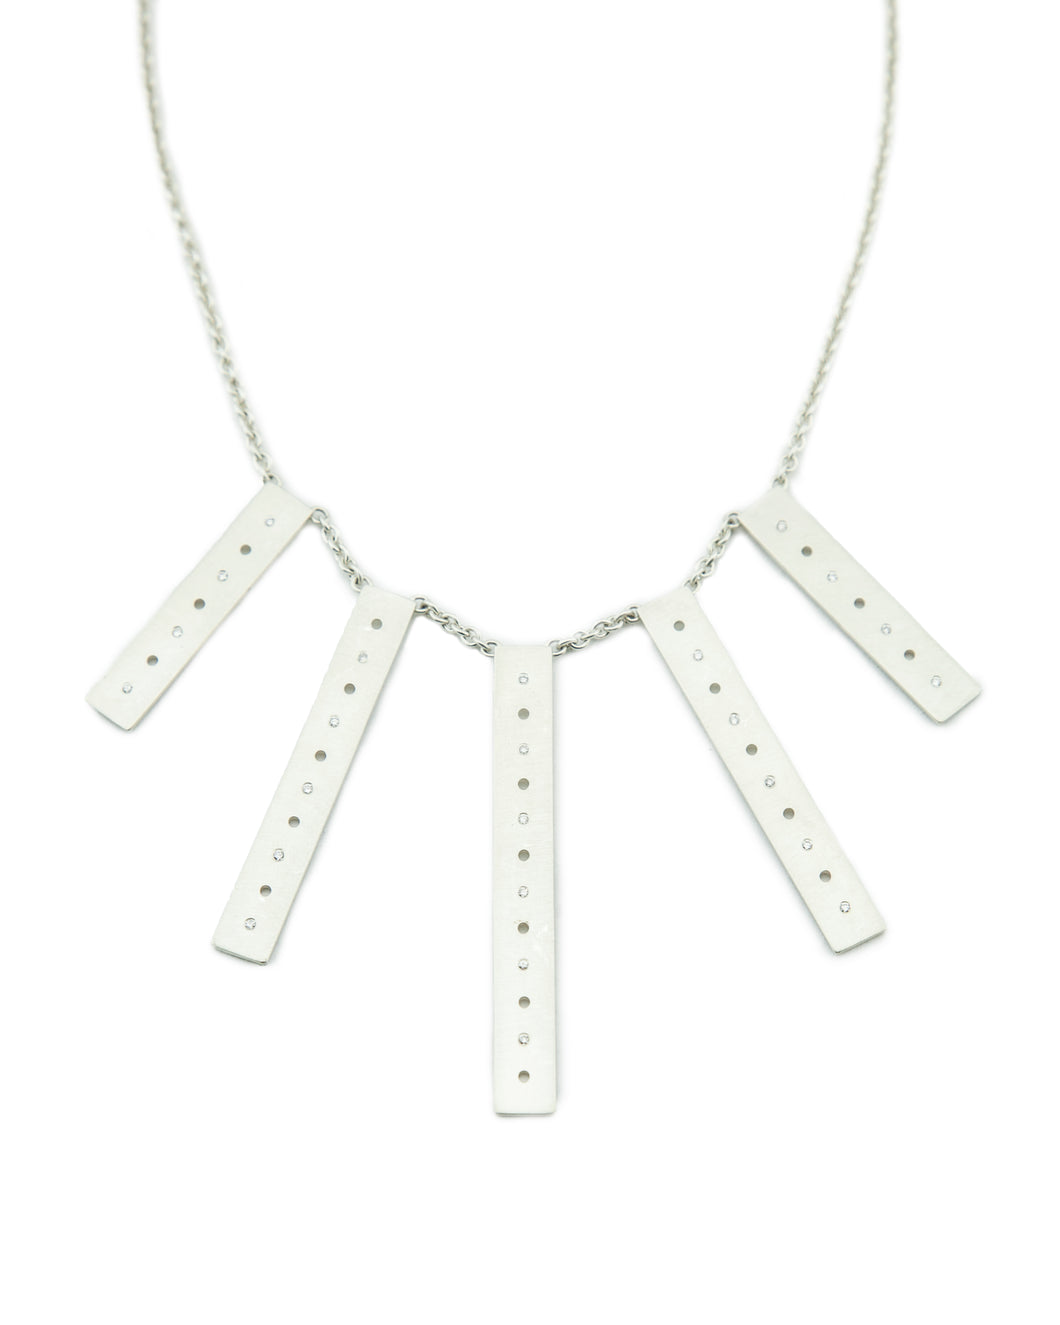 Clean and sleek, sterling silver and diamond bar statement necklace.   Size: Bars vary from 40mm-60mm long; 8mm width; 18